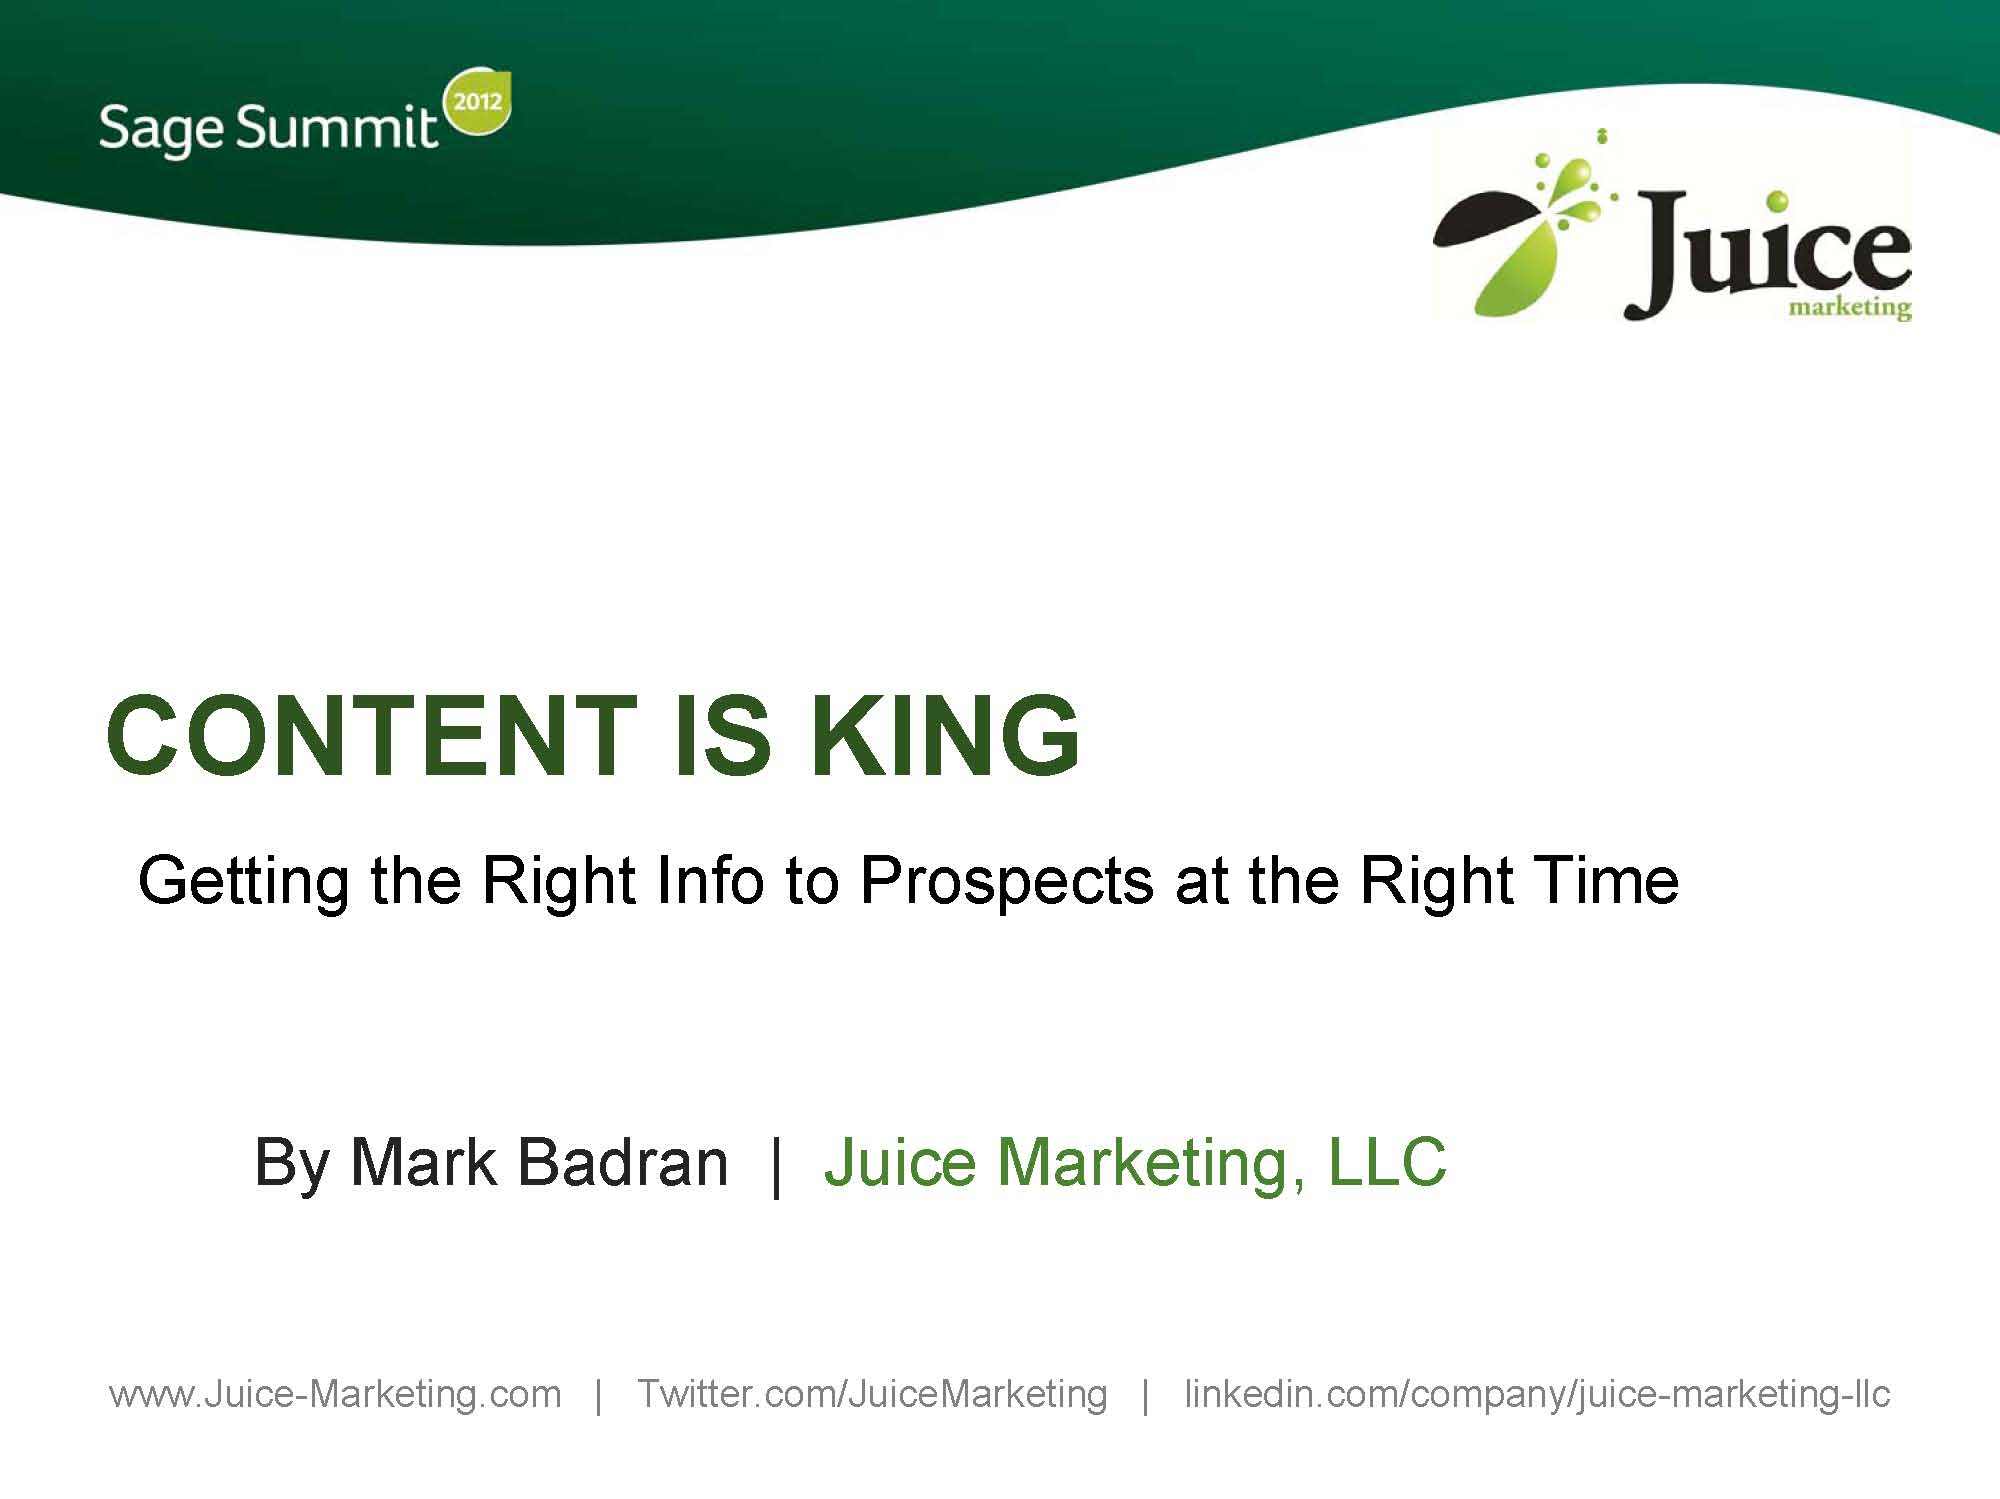 Sage_Summit_Content_King_Juice_Marketing_Page_01